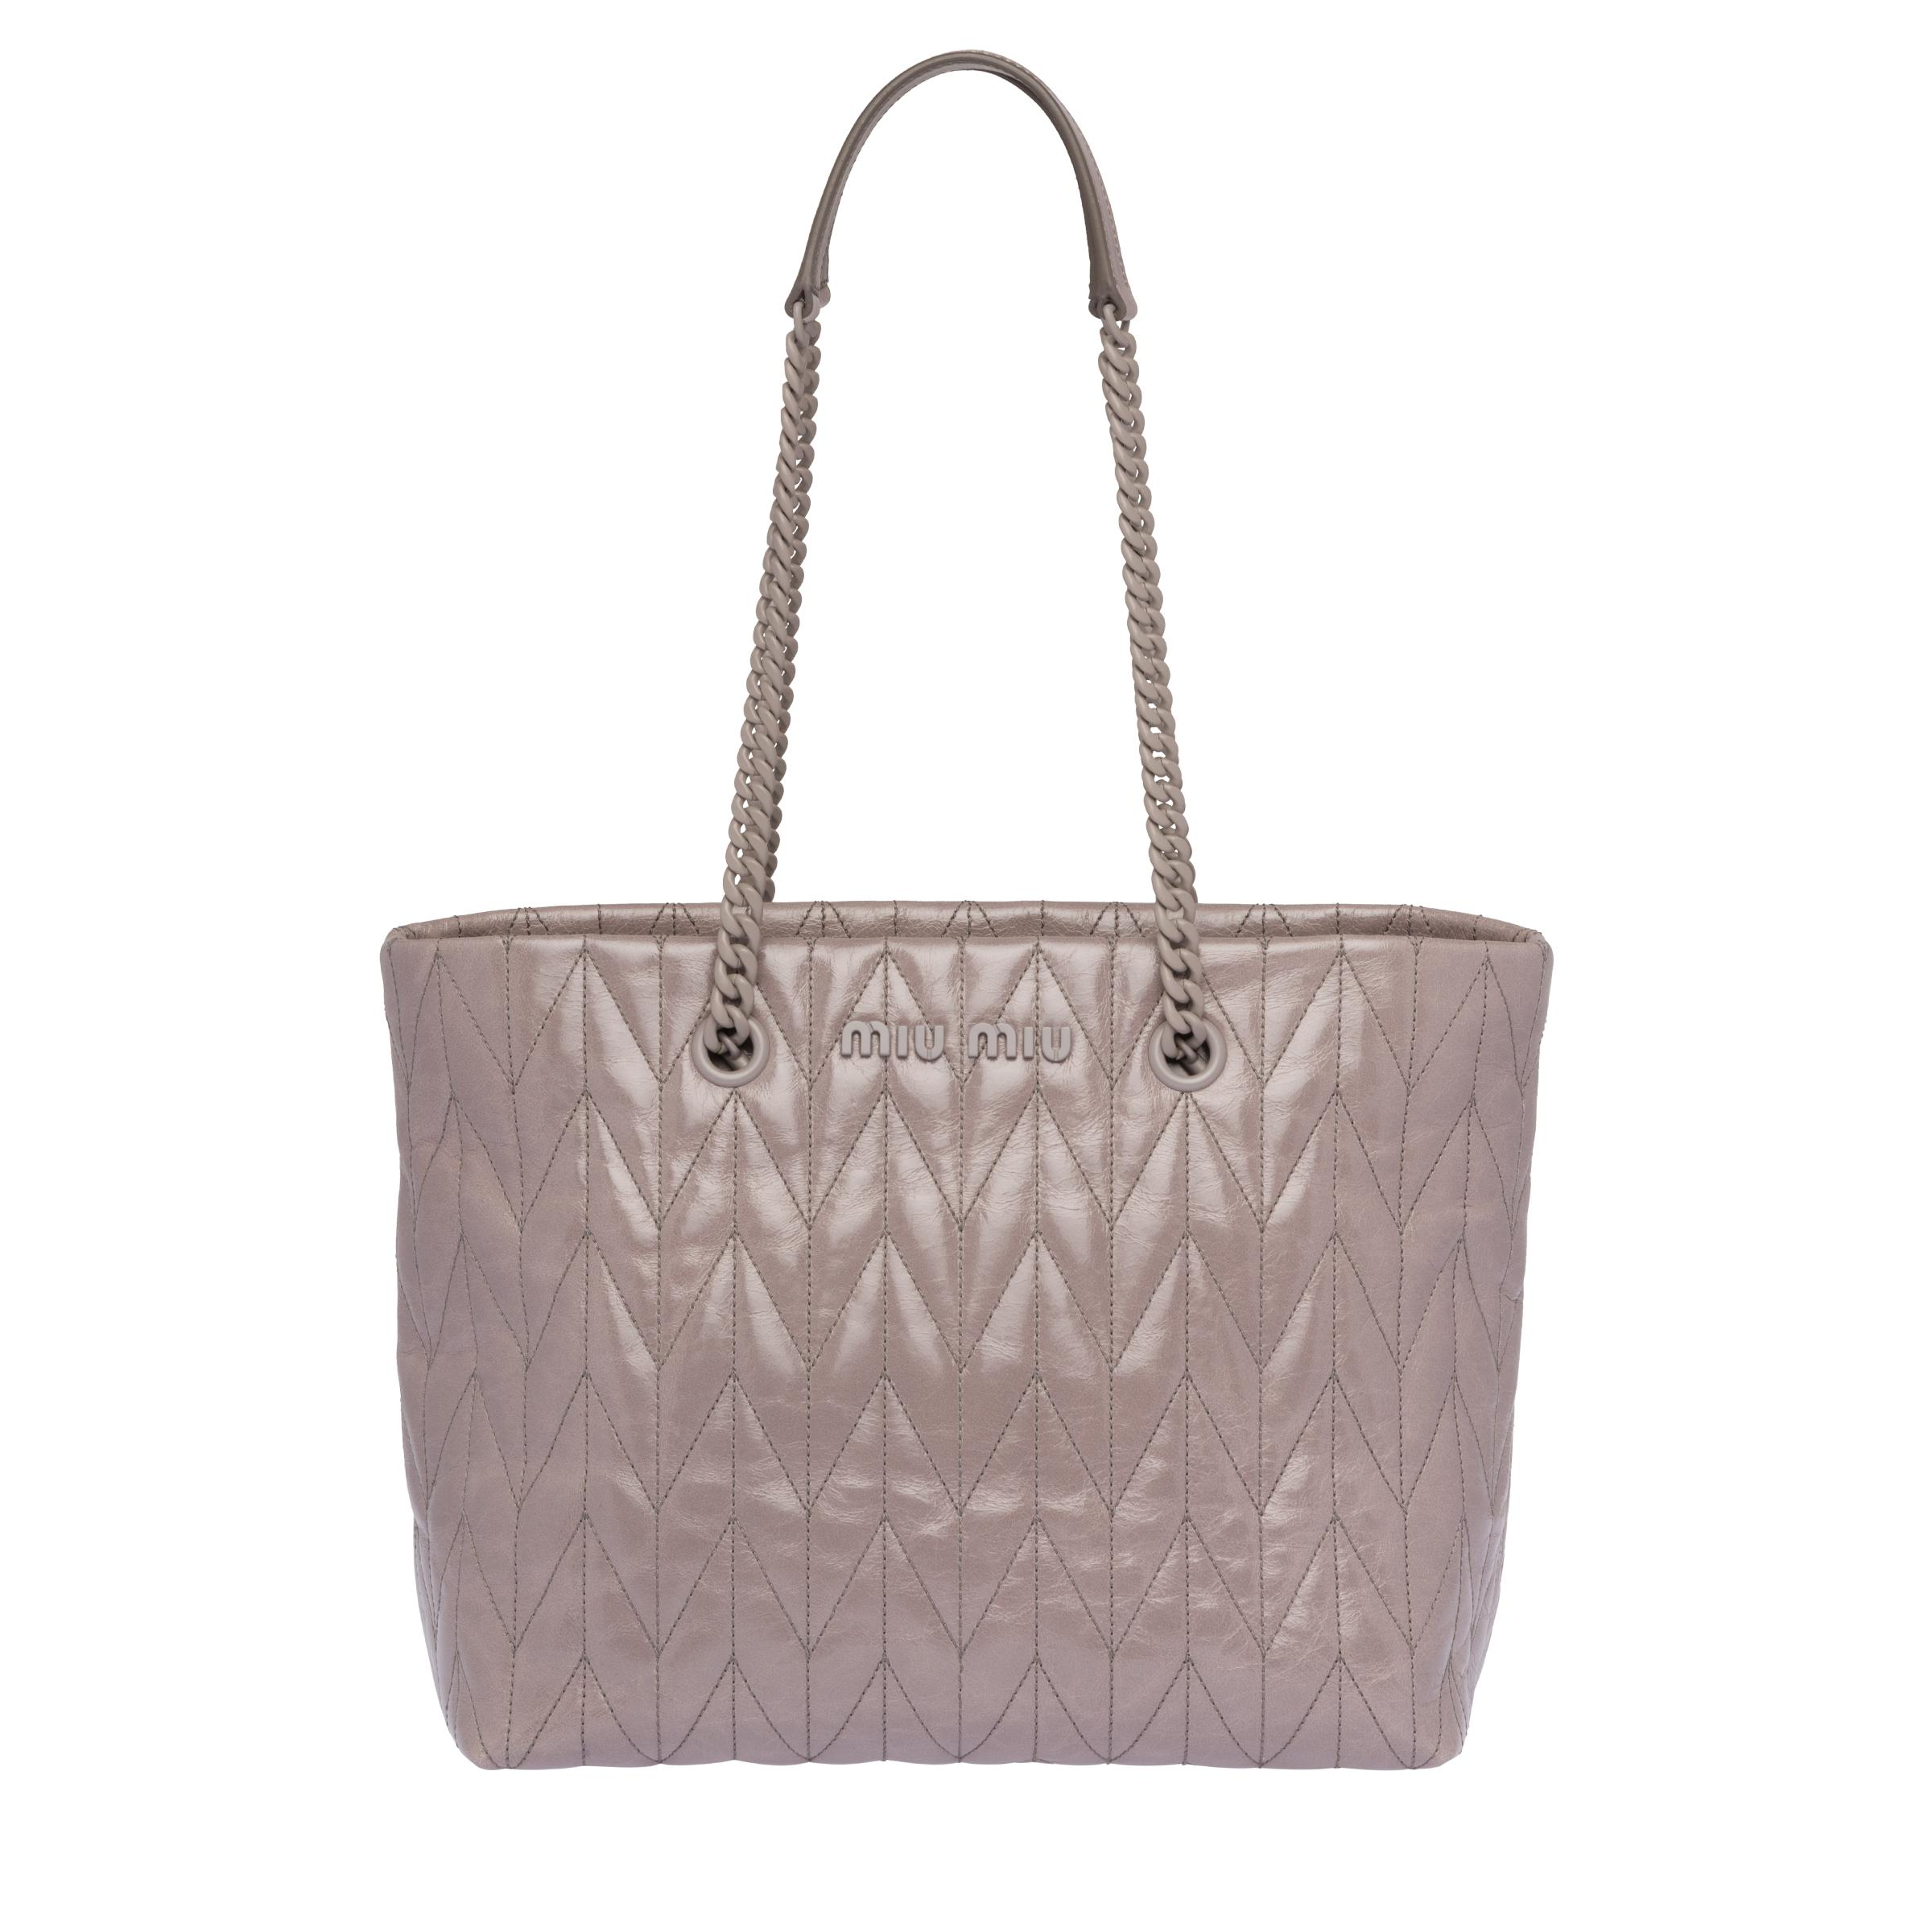 Quilted Shiny Leather Tote Bag Women Dark Grey